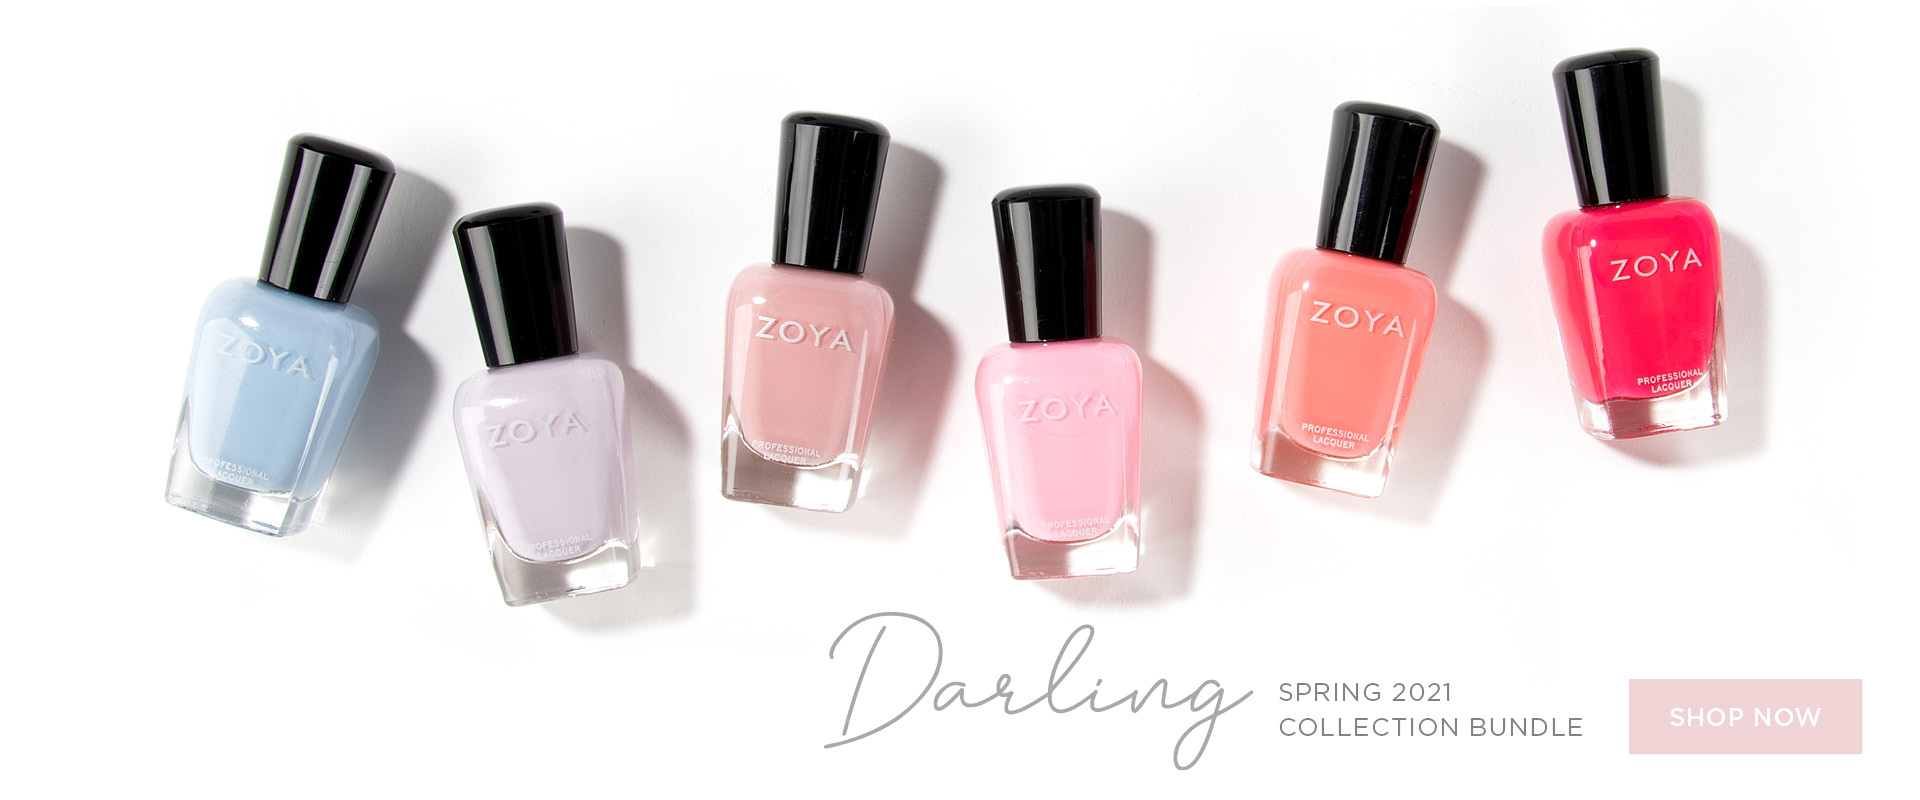 zoya darling spring bundle